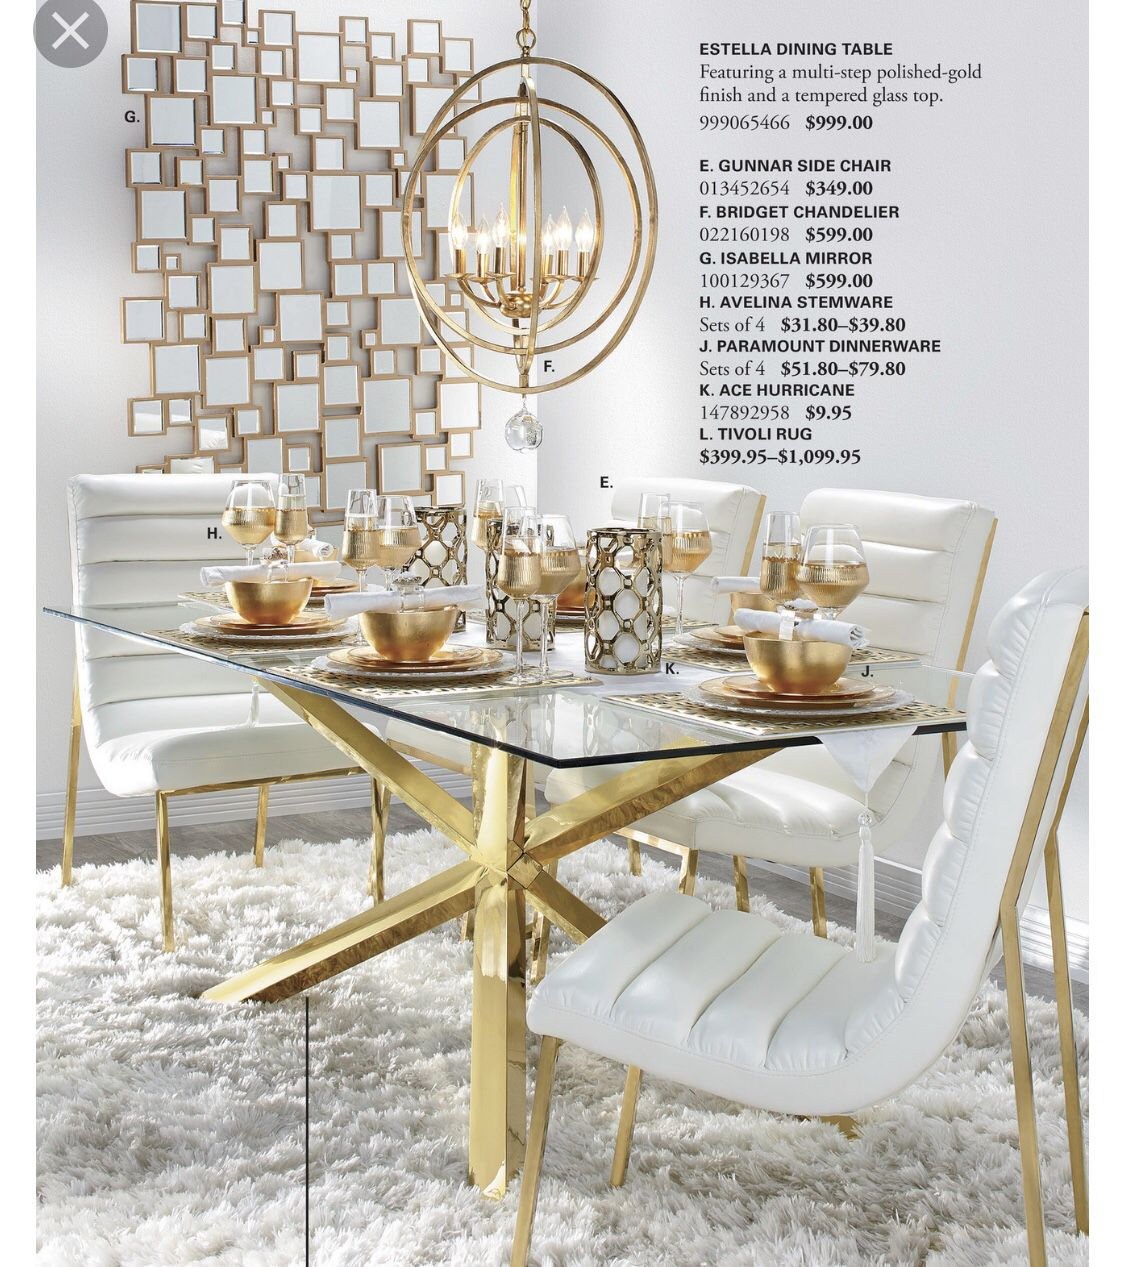 Axis Dining Table Z Gallerie For, Z Gallerie Dining Room Chairs